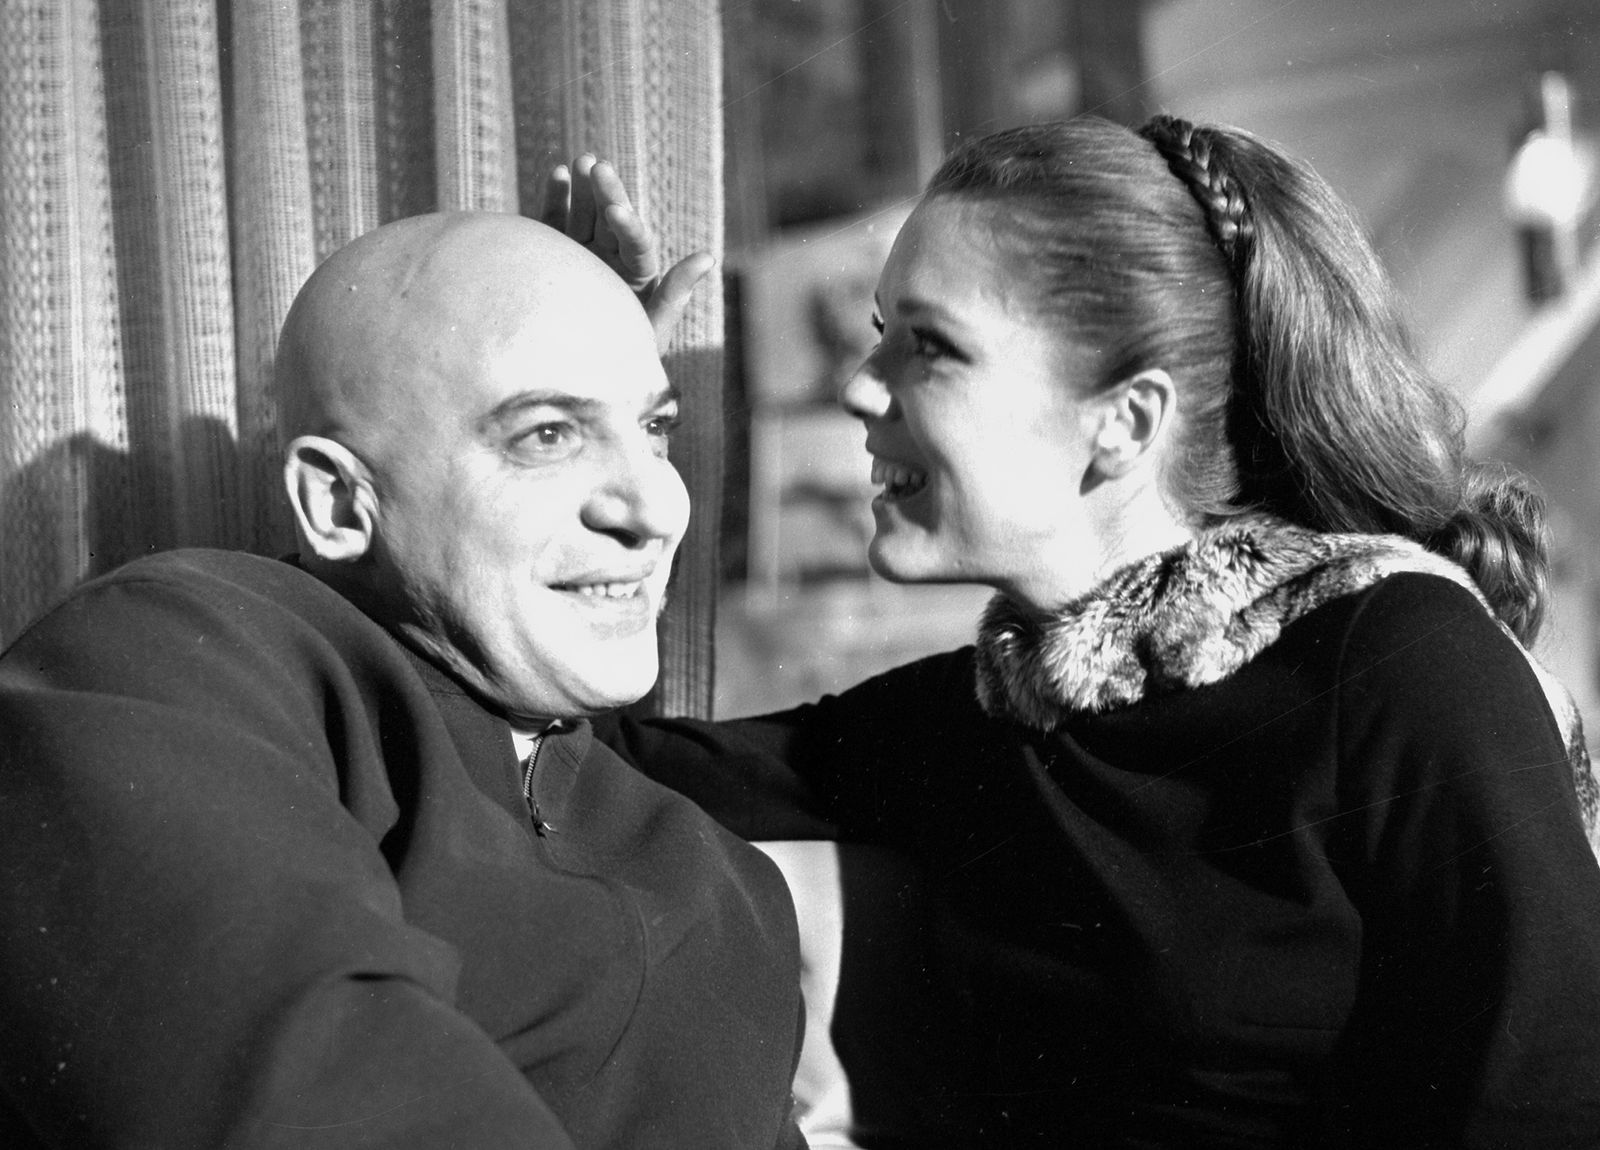 DIANA RIGG TELLY SAVALAS